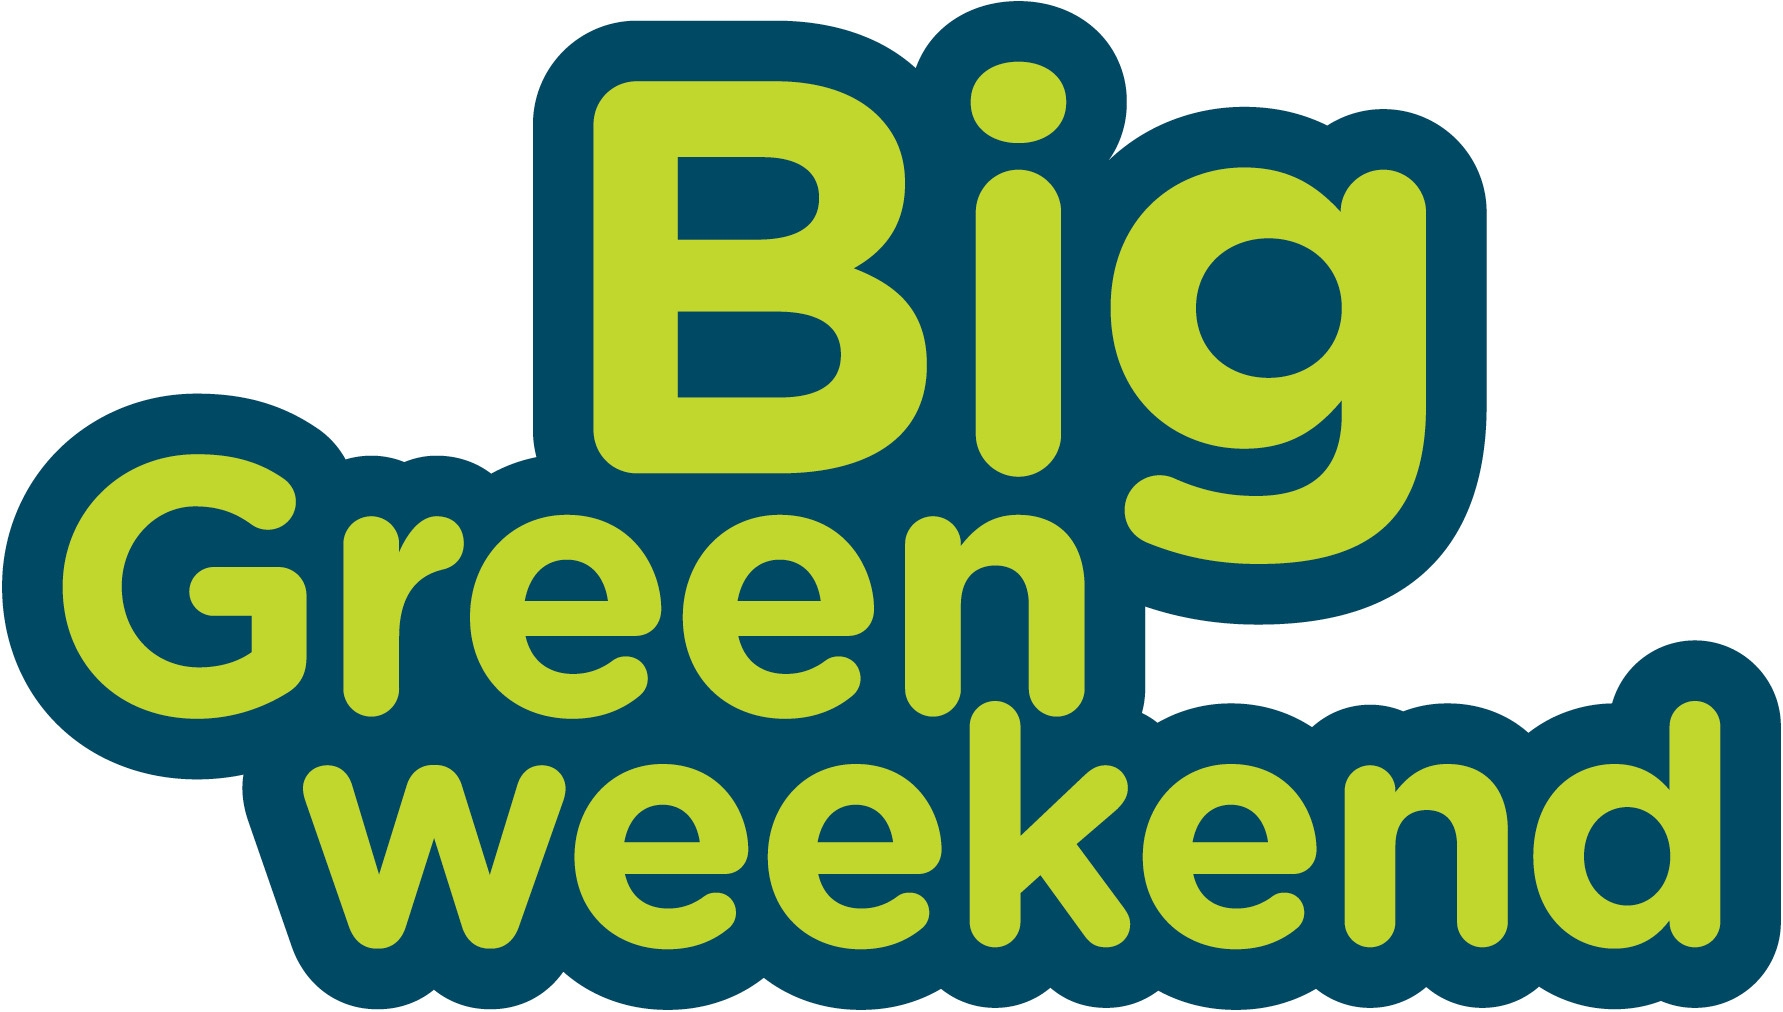 big green weekend image colour